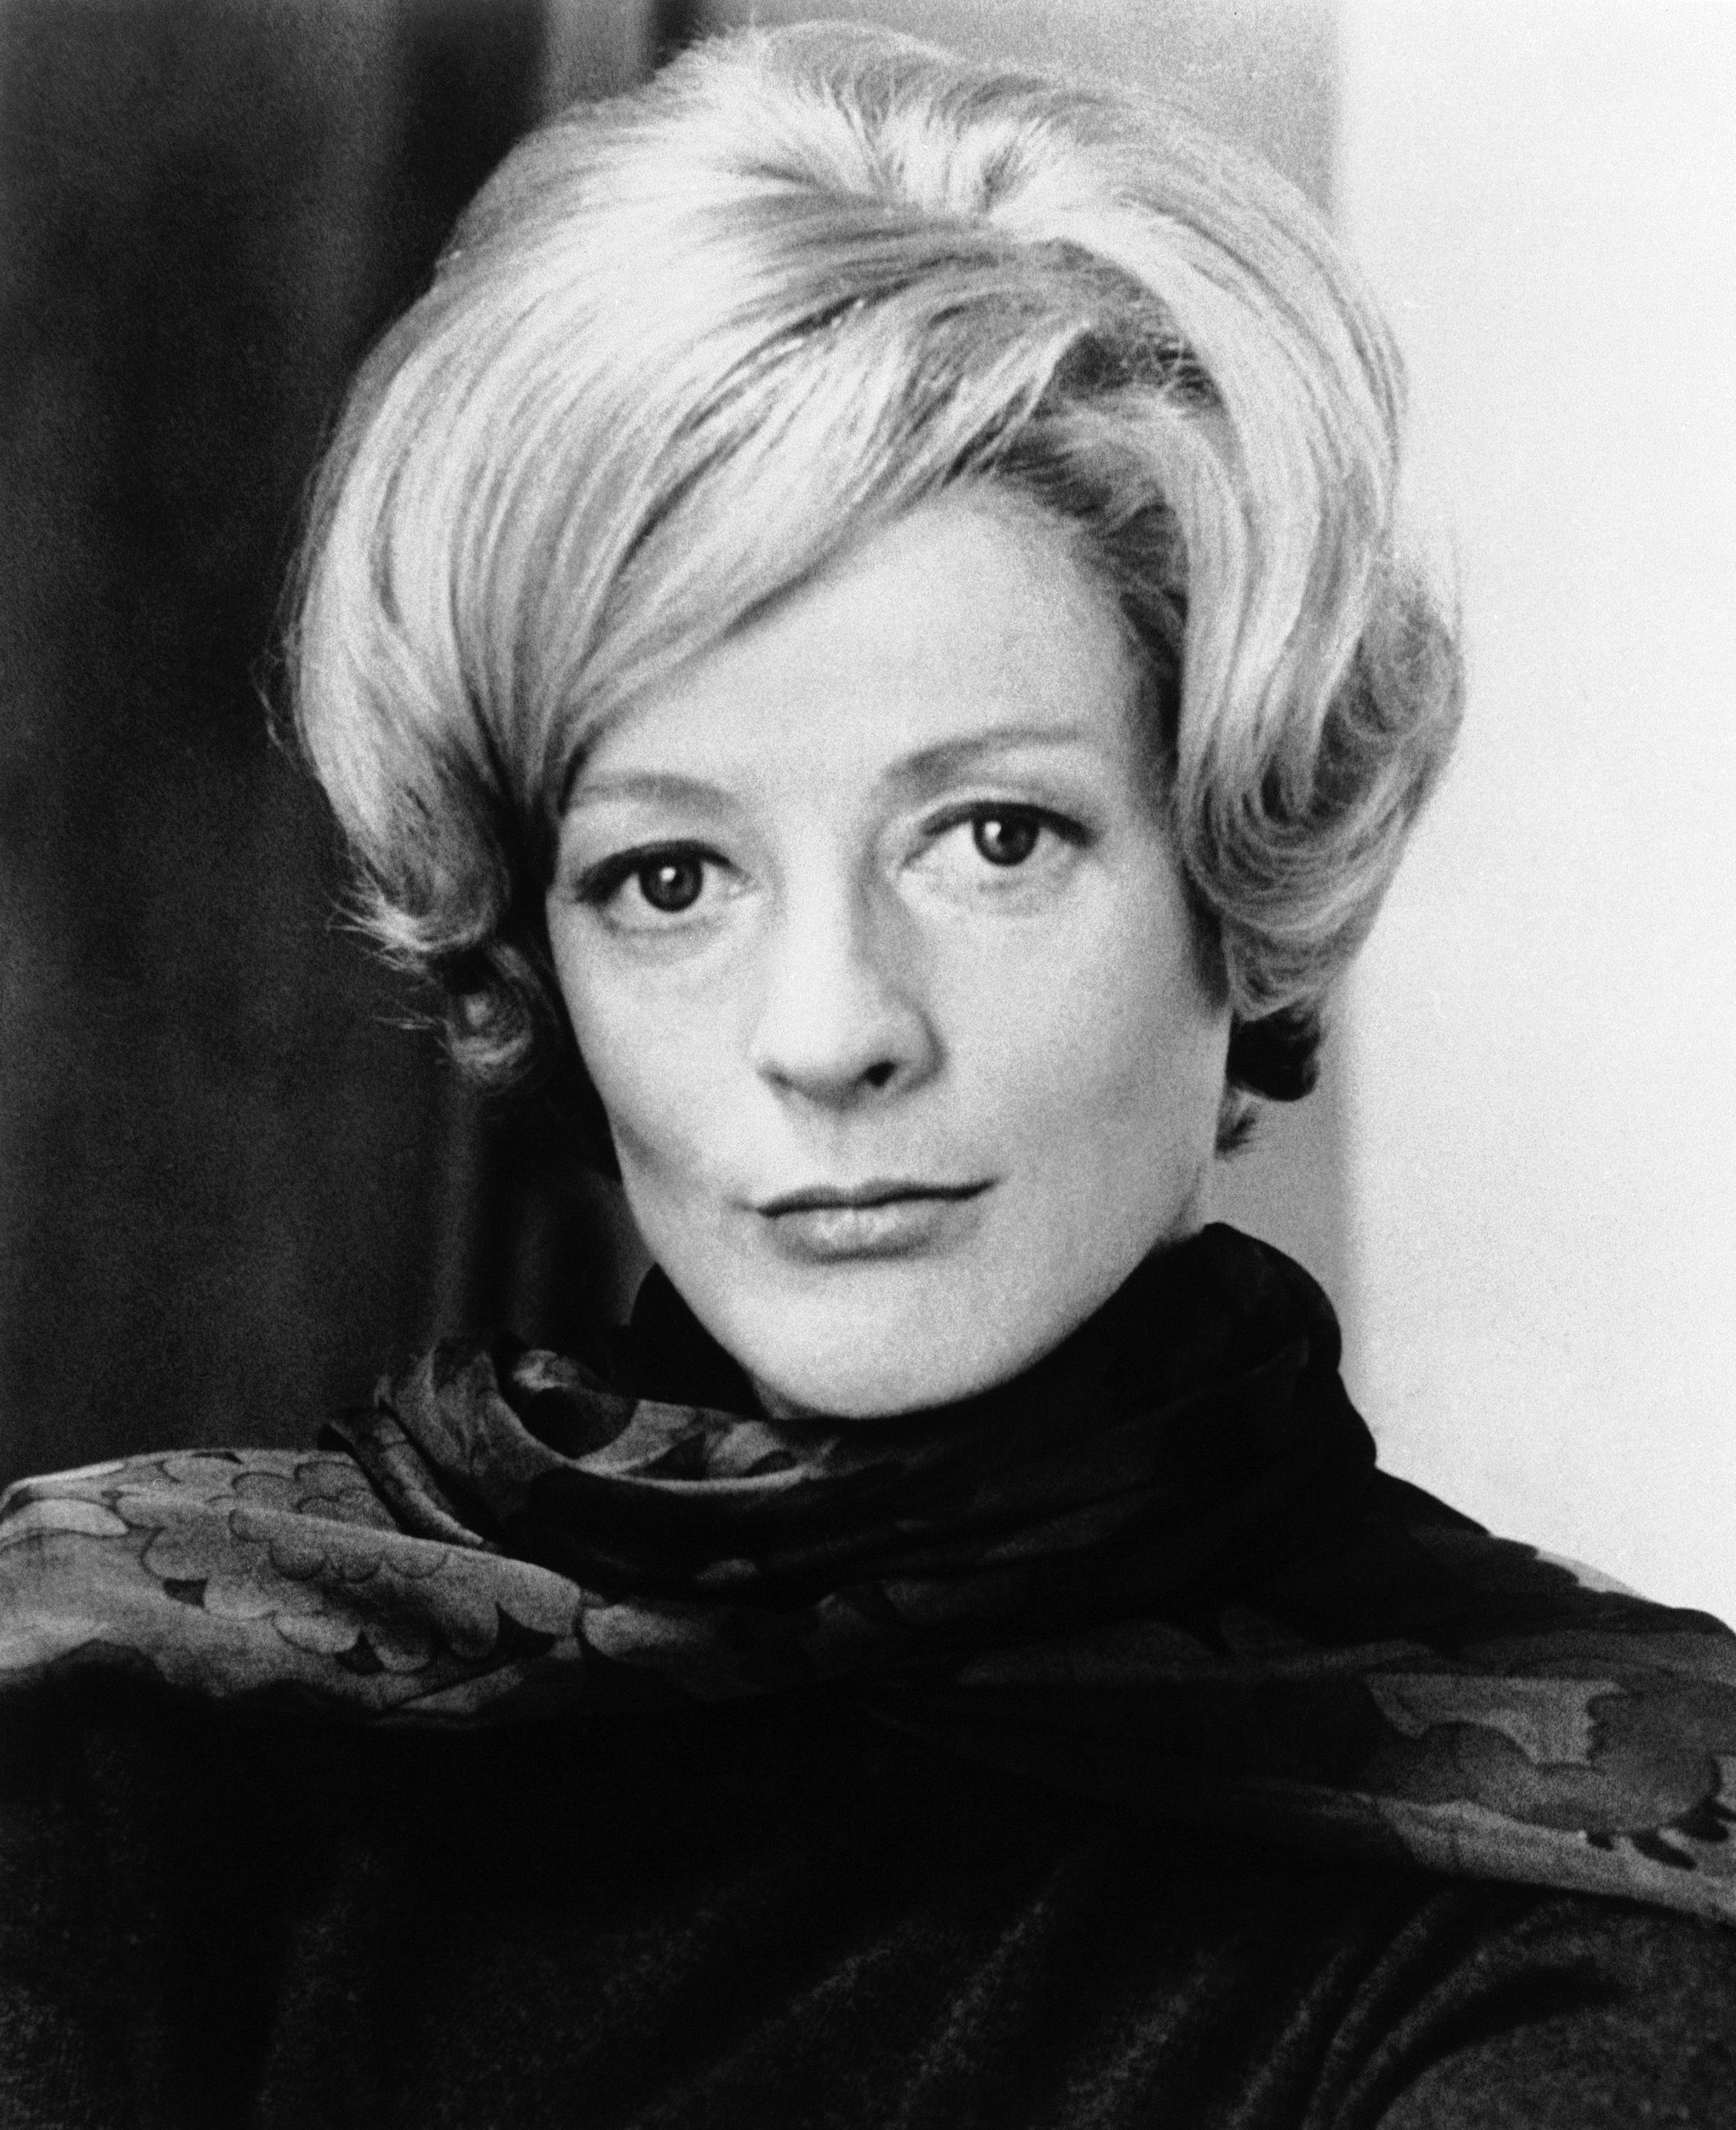 images Maggie Smith (born 1934)